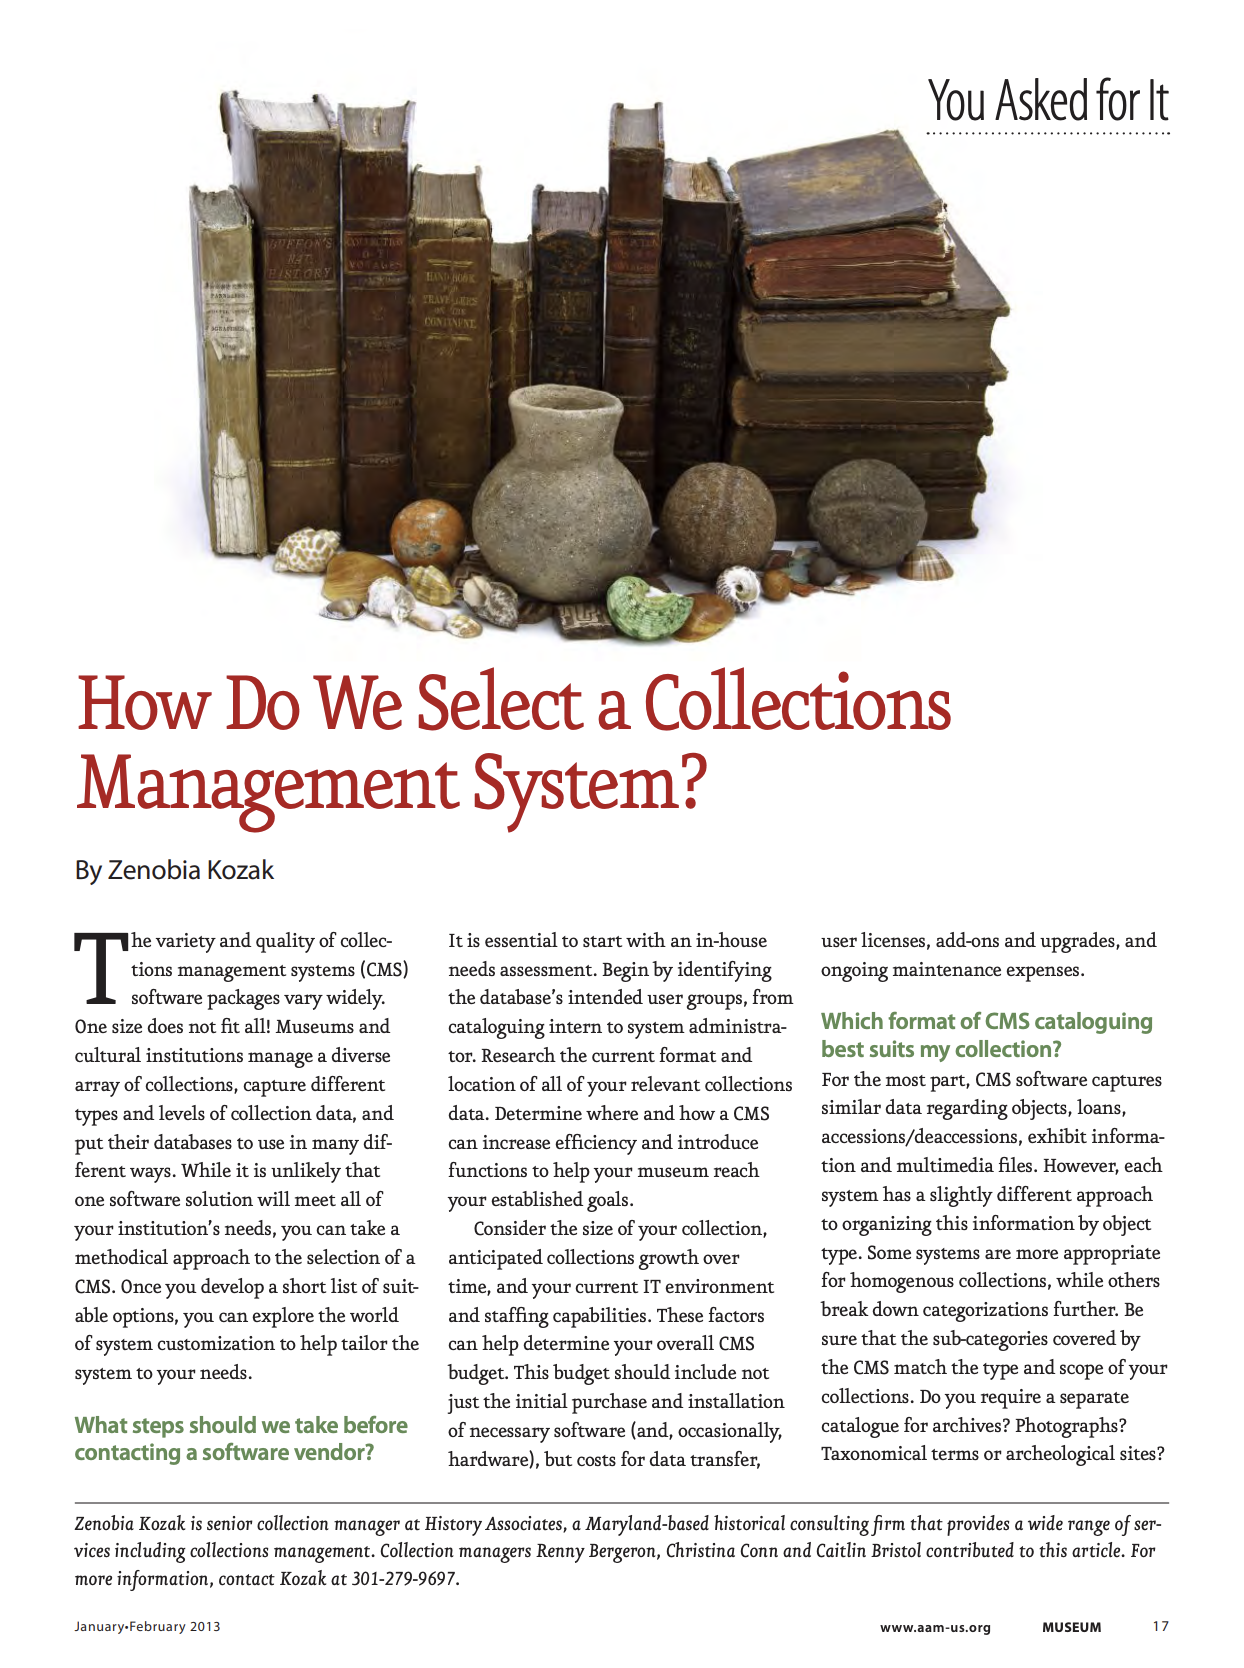 How Do We Select a Collections Management System?